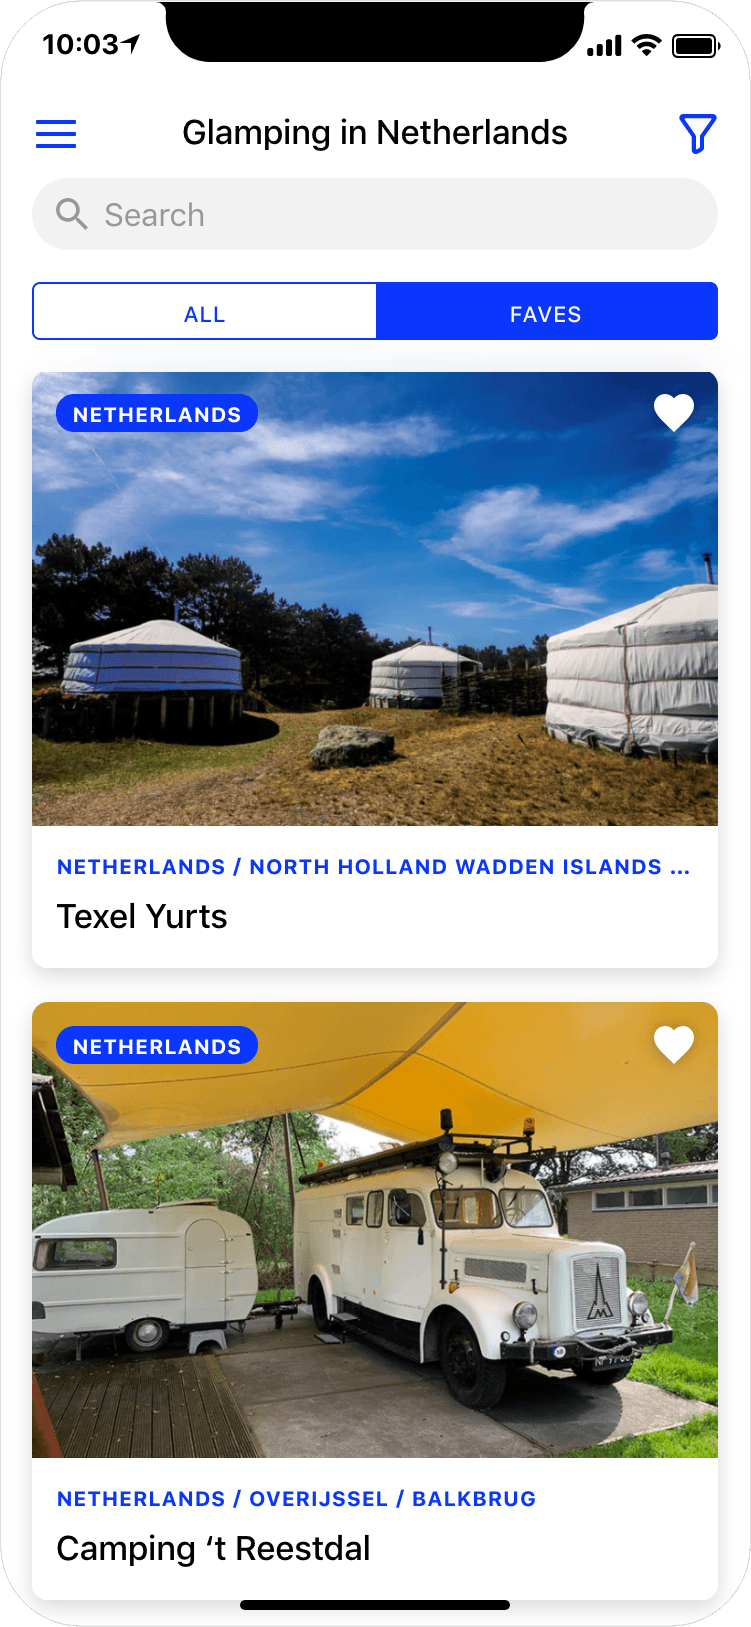 Glamping in The Netherlands - search results page of app screenshot